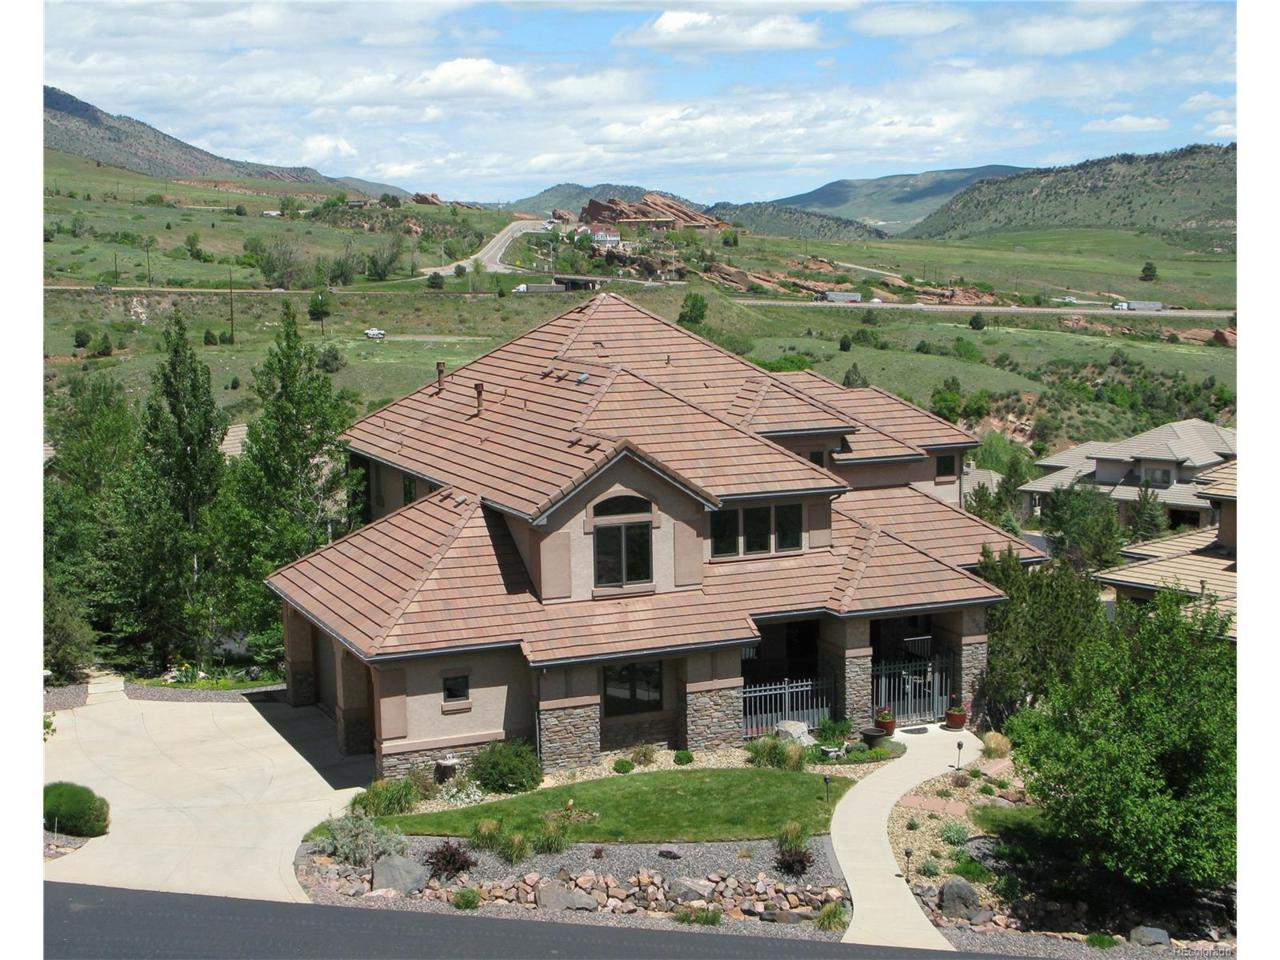 17091 Snowcreek Lane, Morrison, CO 80465 (MLS #6830731) :: 8z Real Estate